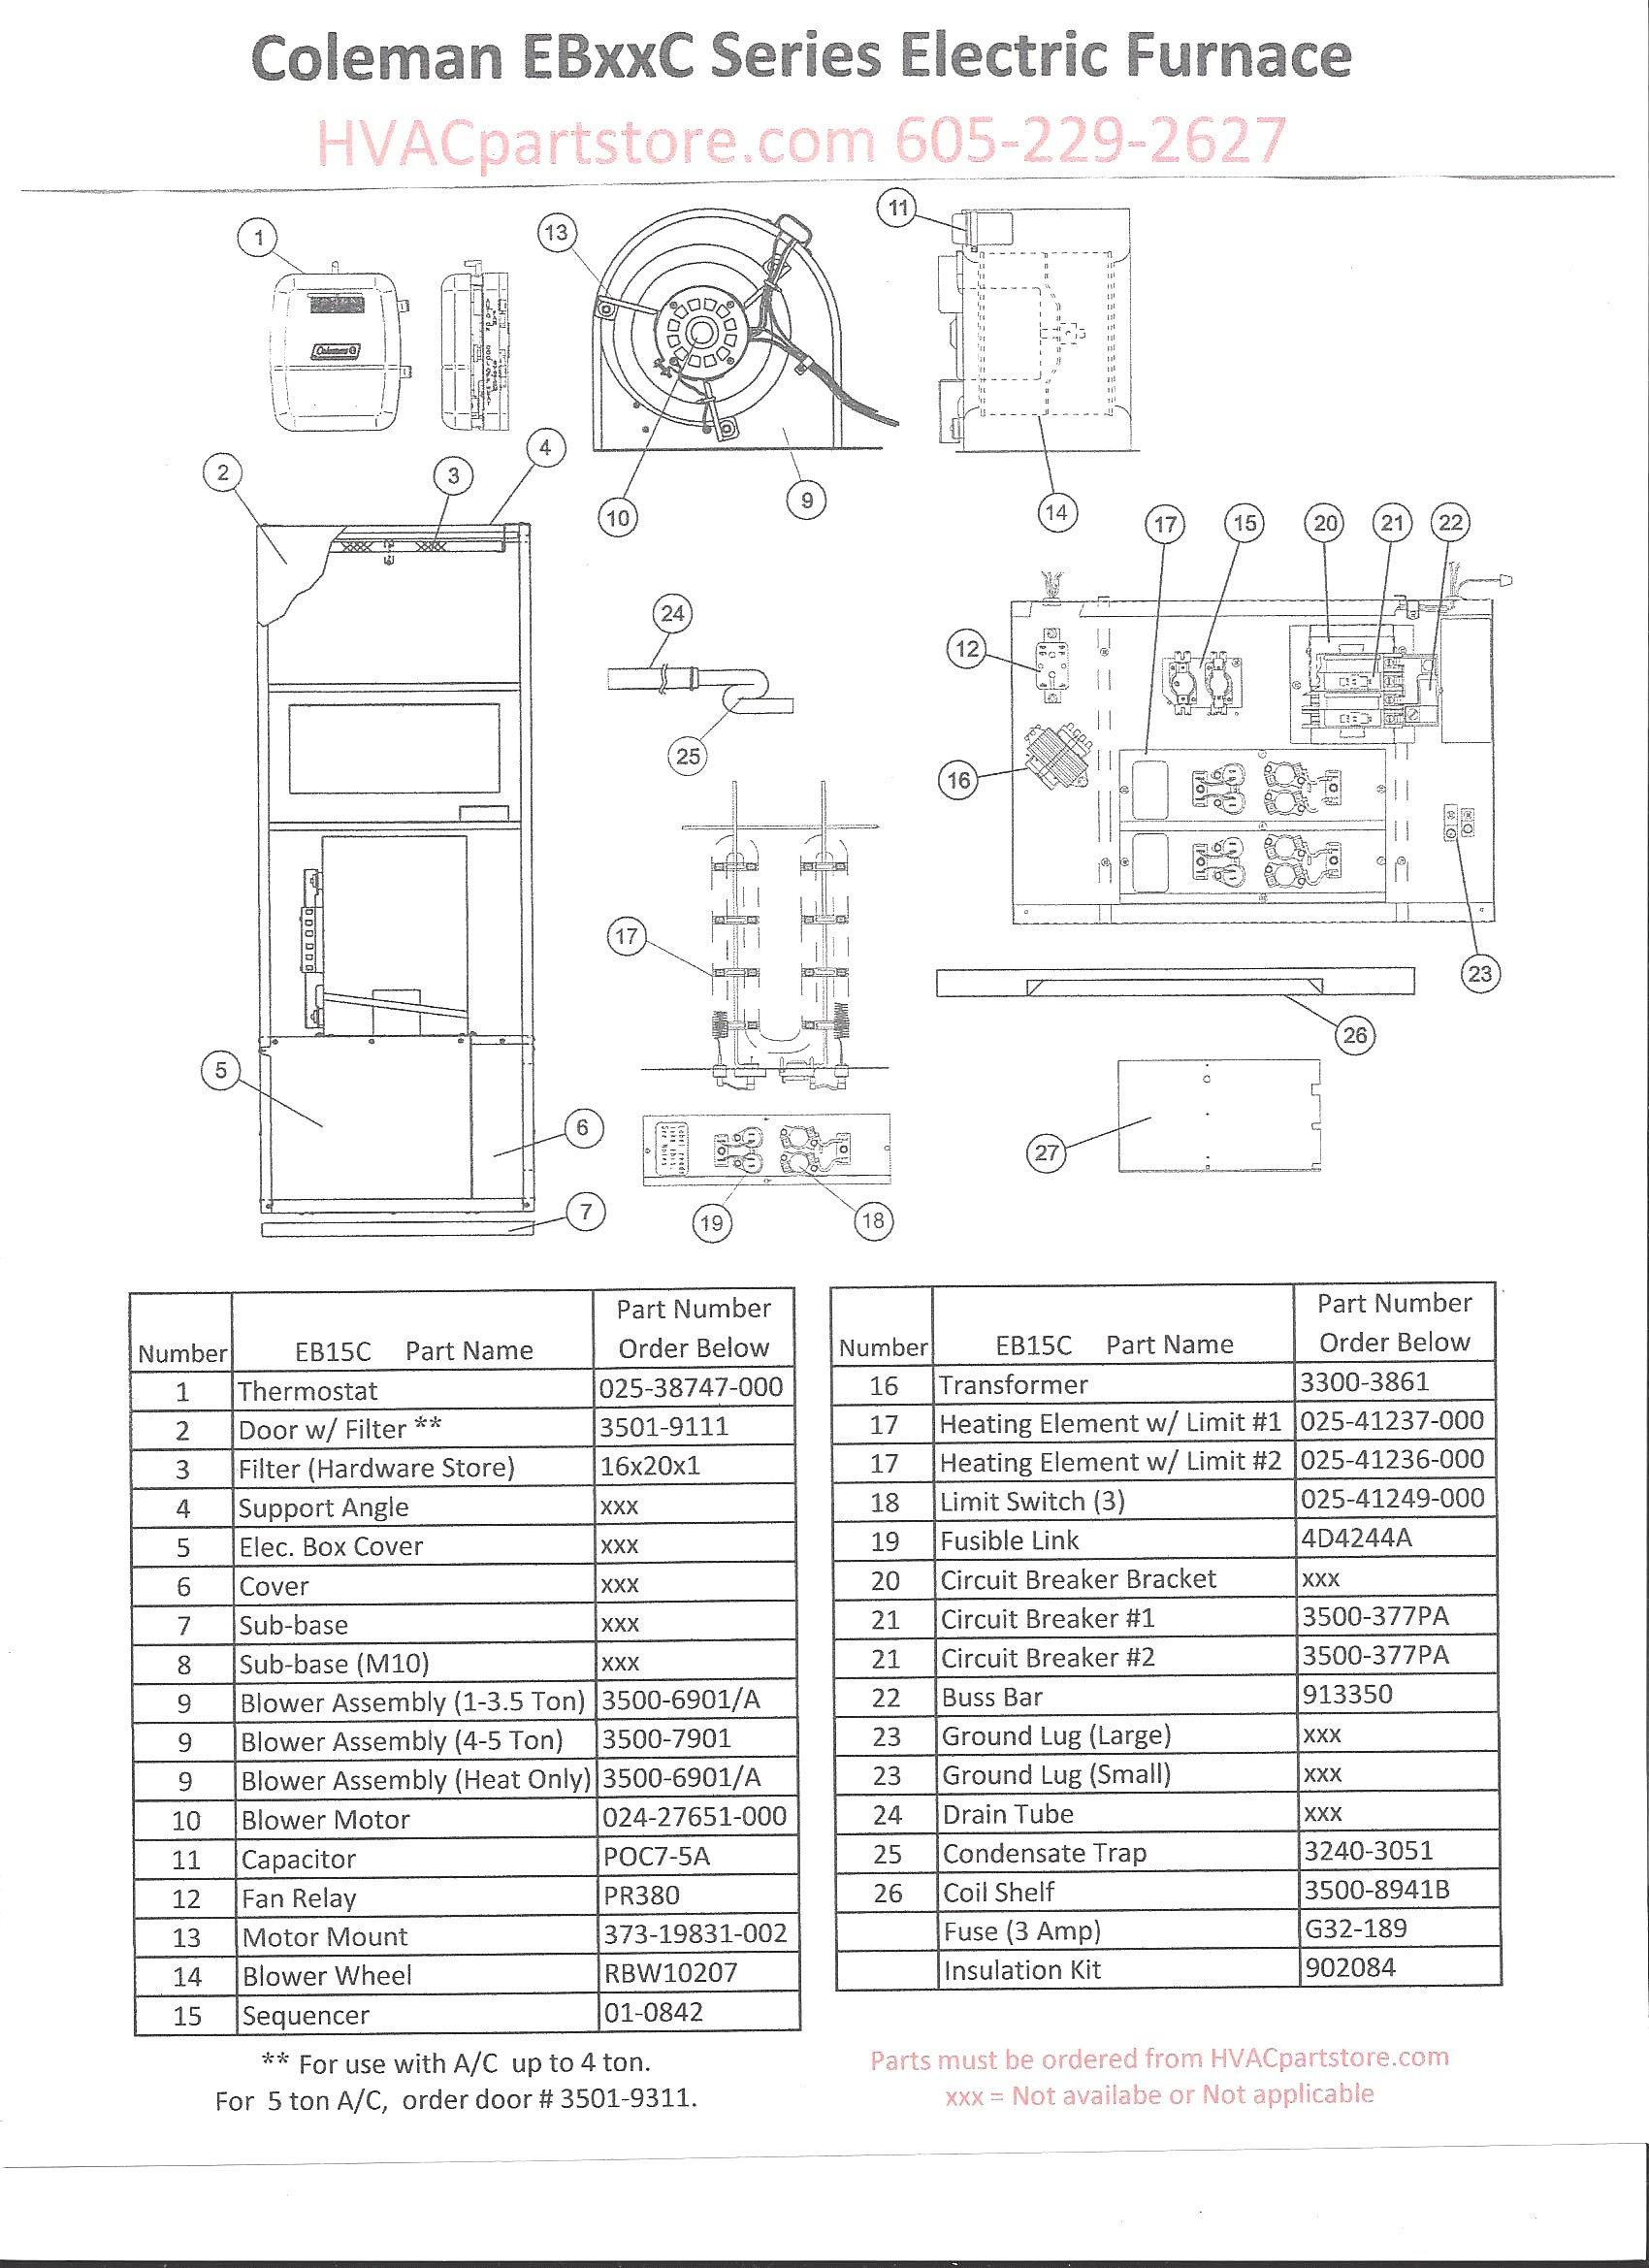 coleman eb15b wiring diagram Download-central electric furnace model eb15b wiring diagram new coleman electric furnace wiring diagram inside evcon for 4-s